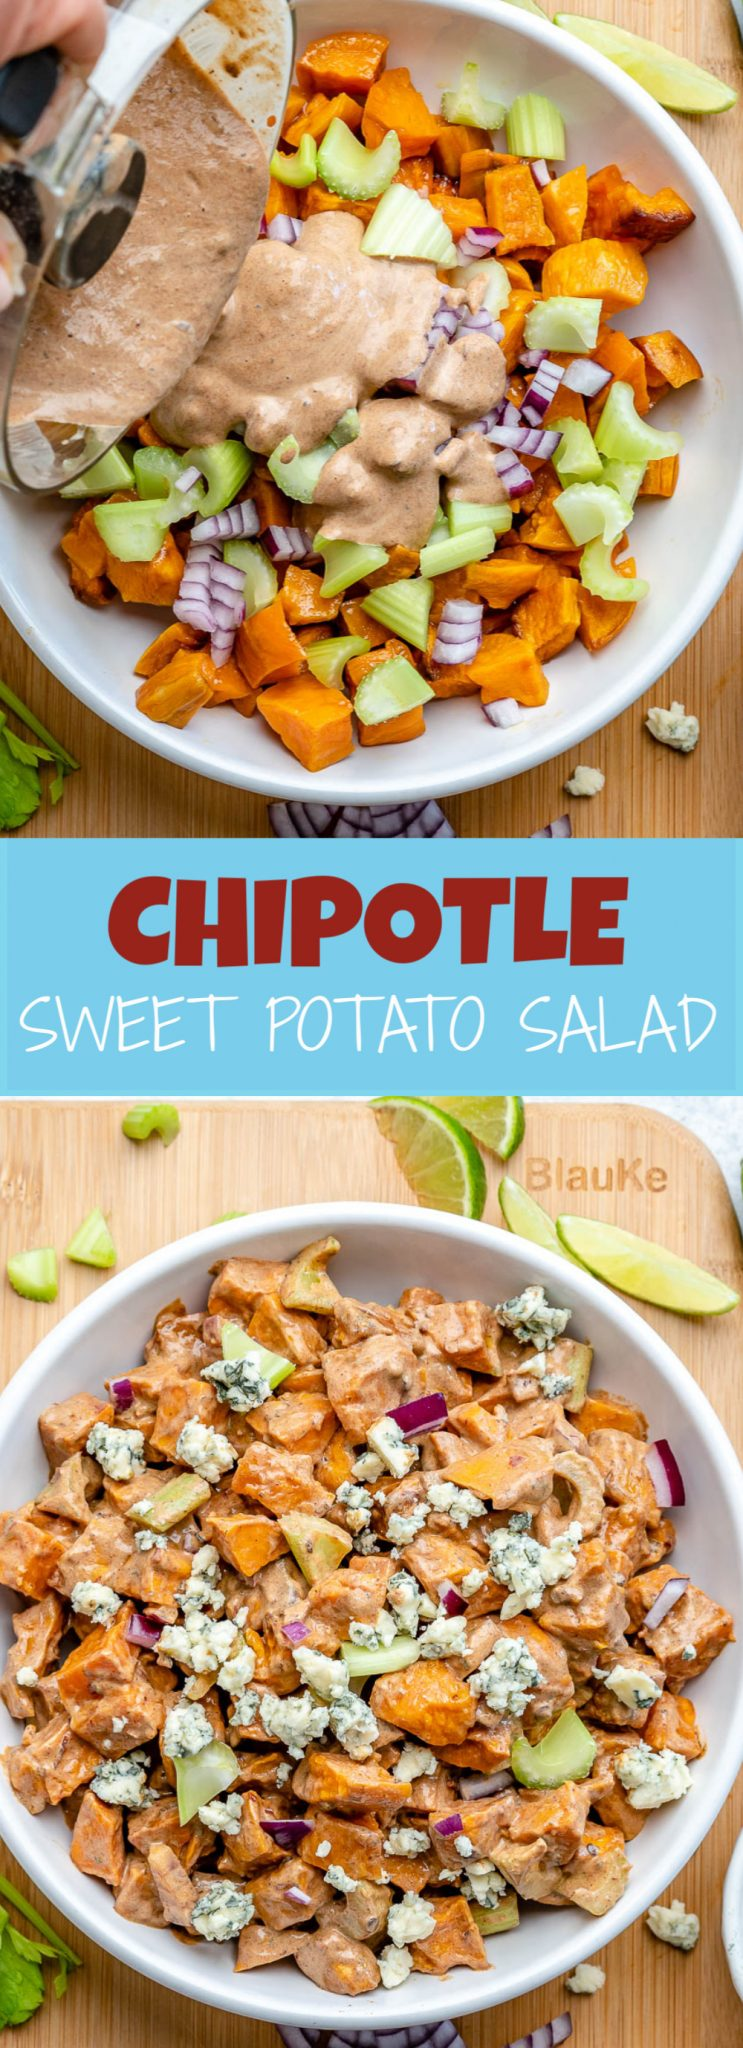 Chipotle Roasted Sweet Potato Salad Clean Food Crush